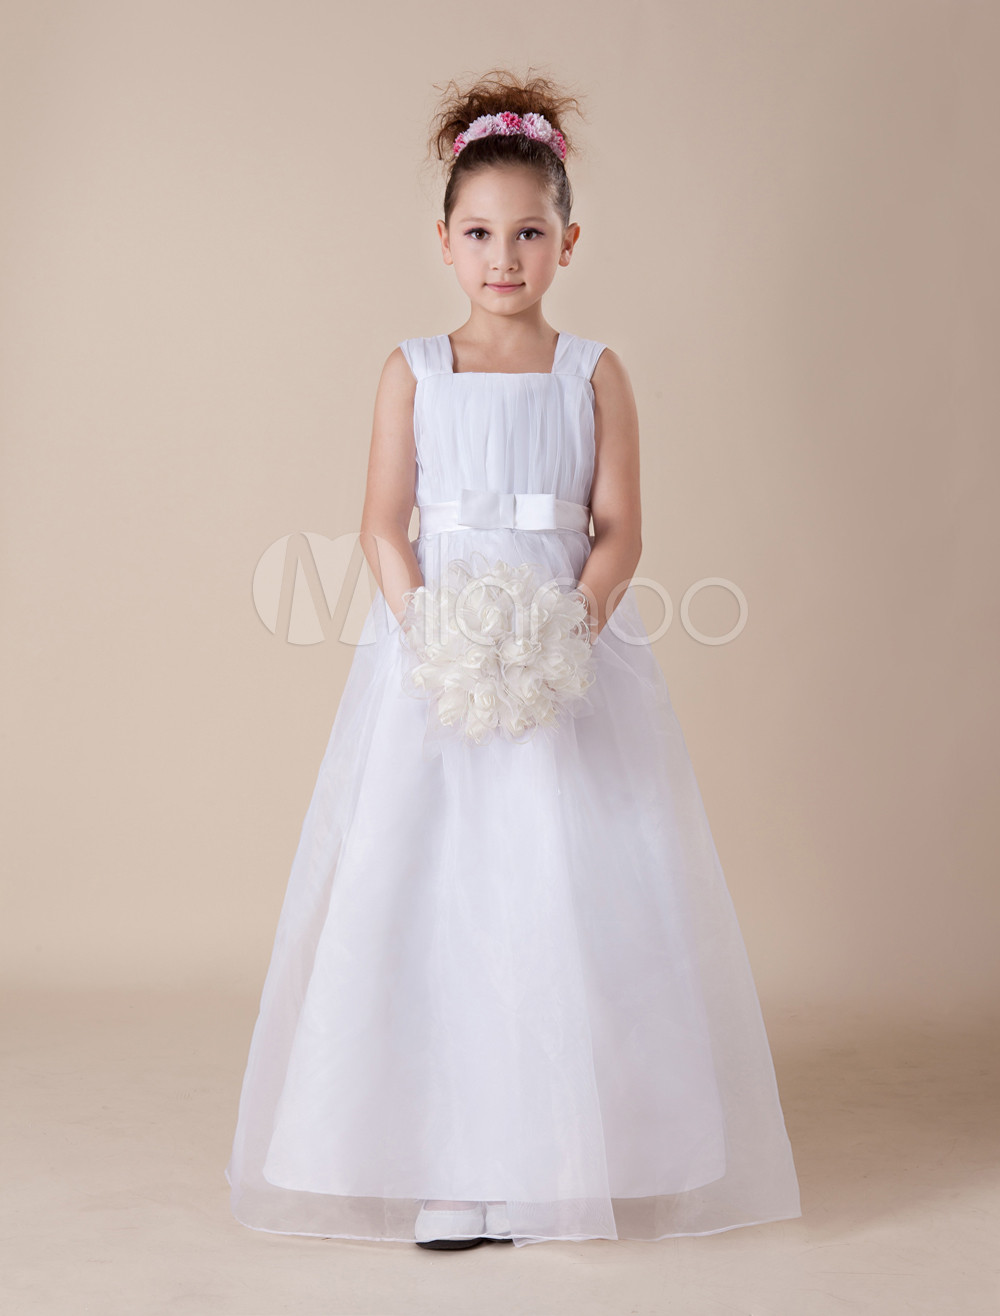 Romantic White Sleeveless Satin Organza Flower Girl Dress